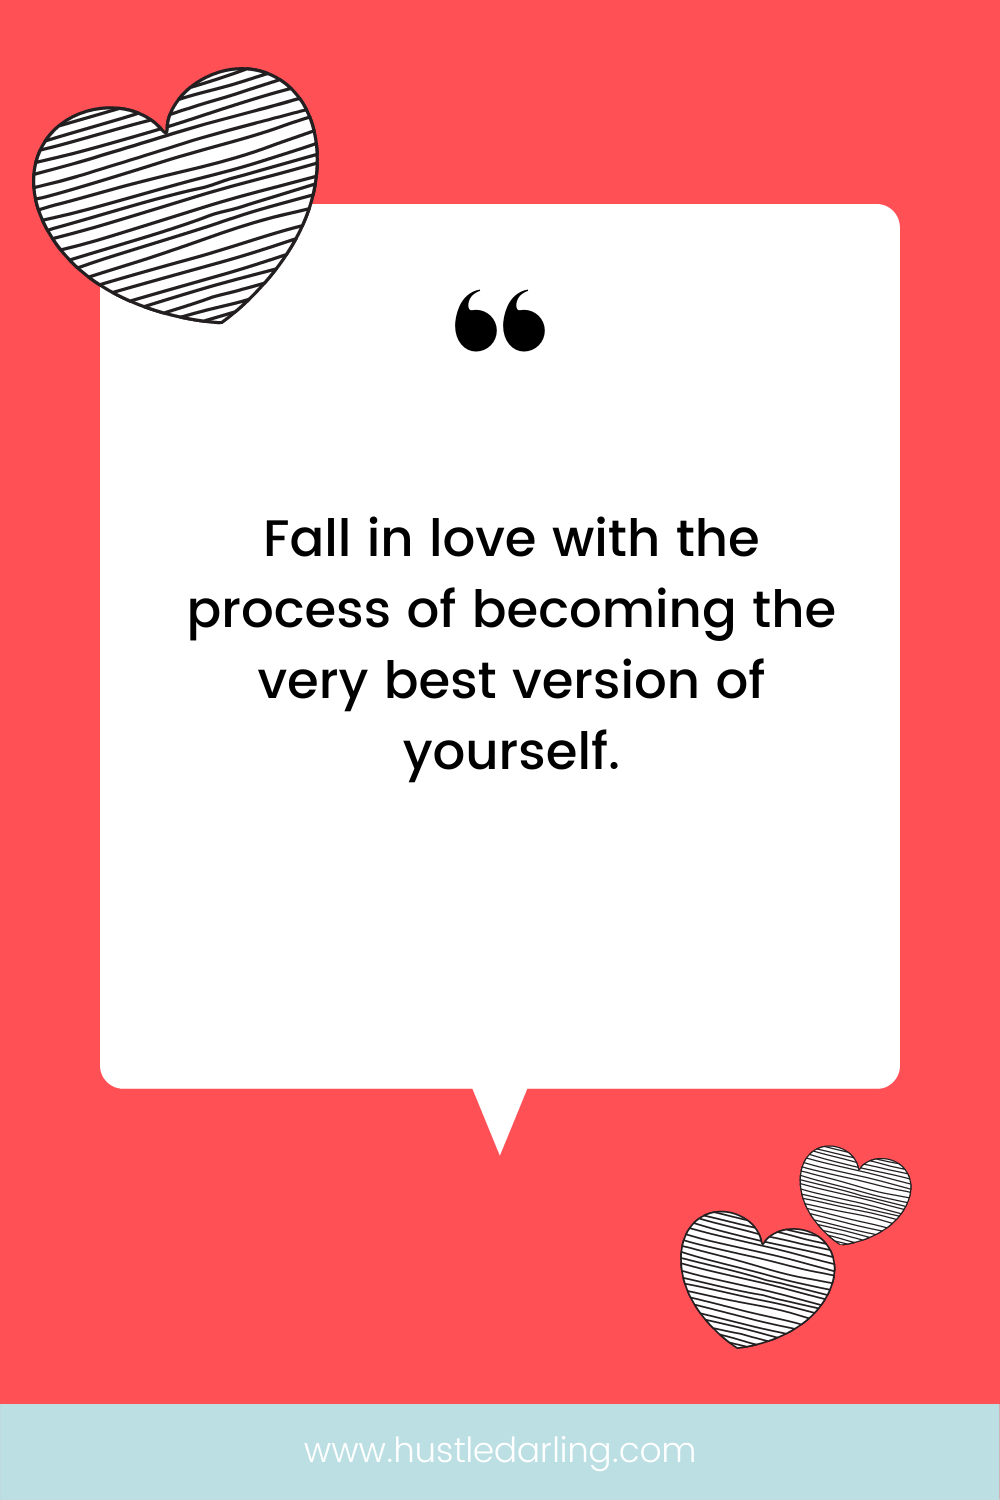 """Black and white striped hearts are in the top left corner and bottom right corner of the image. On a hot pink background is a white speech bubble with a large quotation mark at the top. Text underneath reads """"Fall in love with the process of becoming the very best version of yourself."""""""